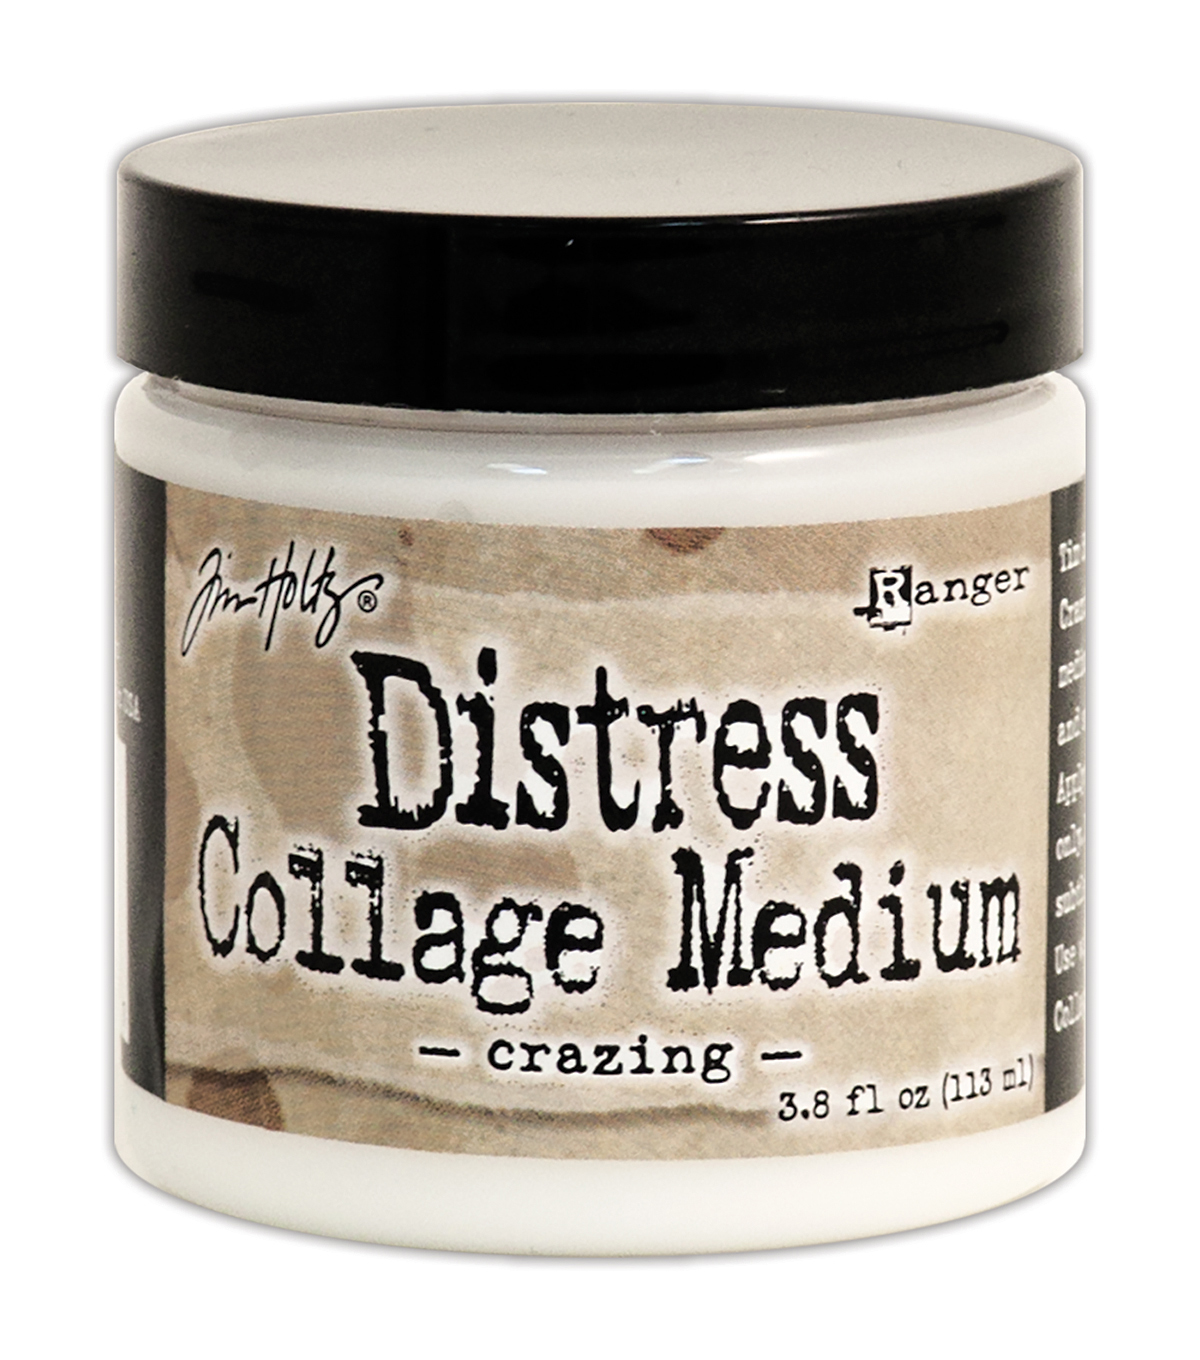 Tim Holtz Distress Collage Medium-Crazing